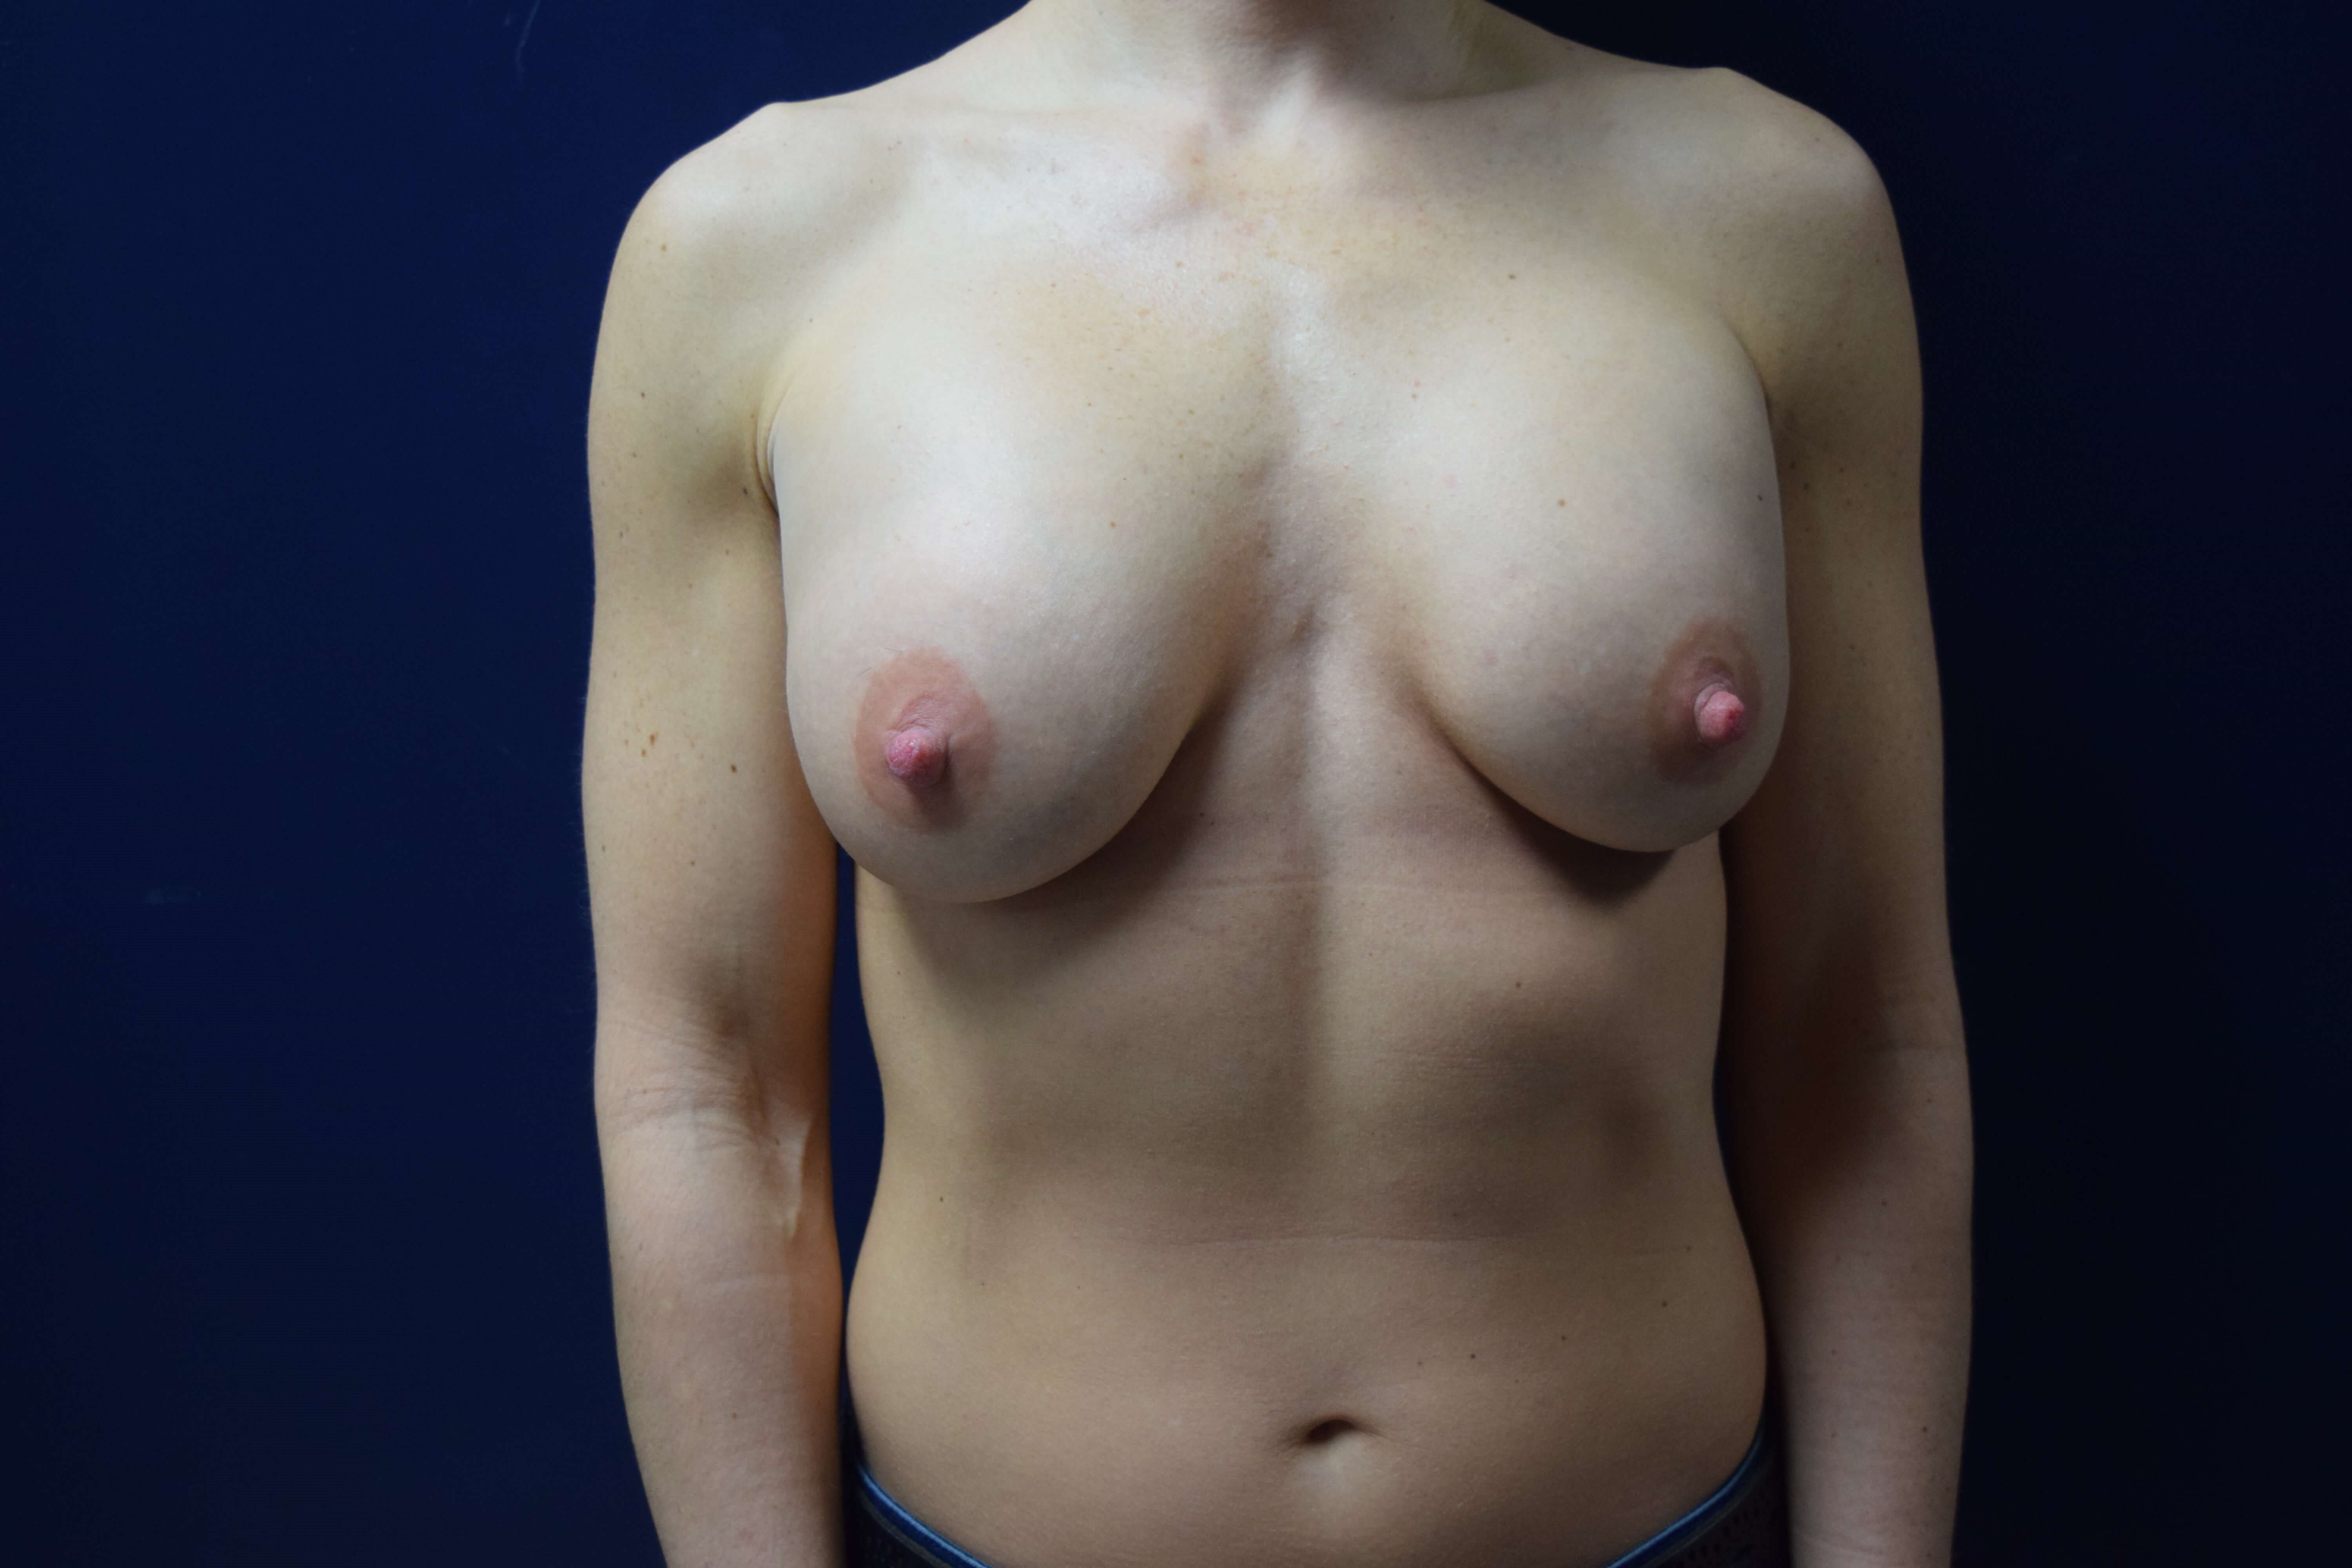 Breast Augmentation 3 months post op